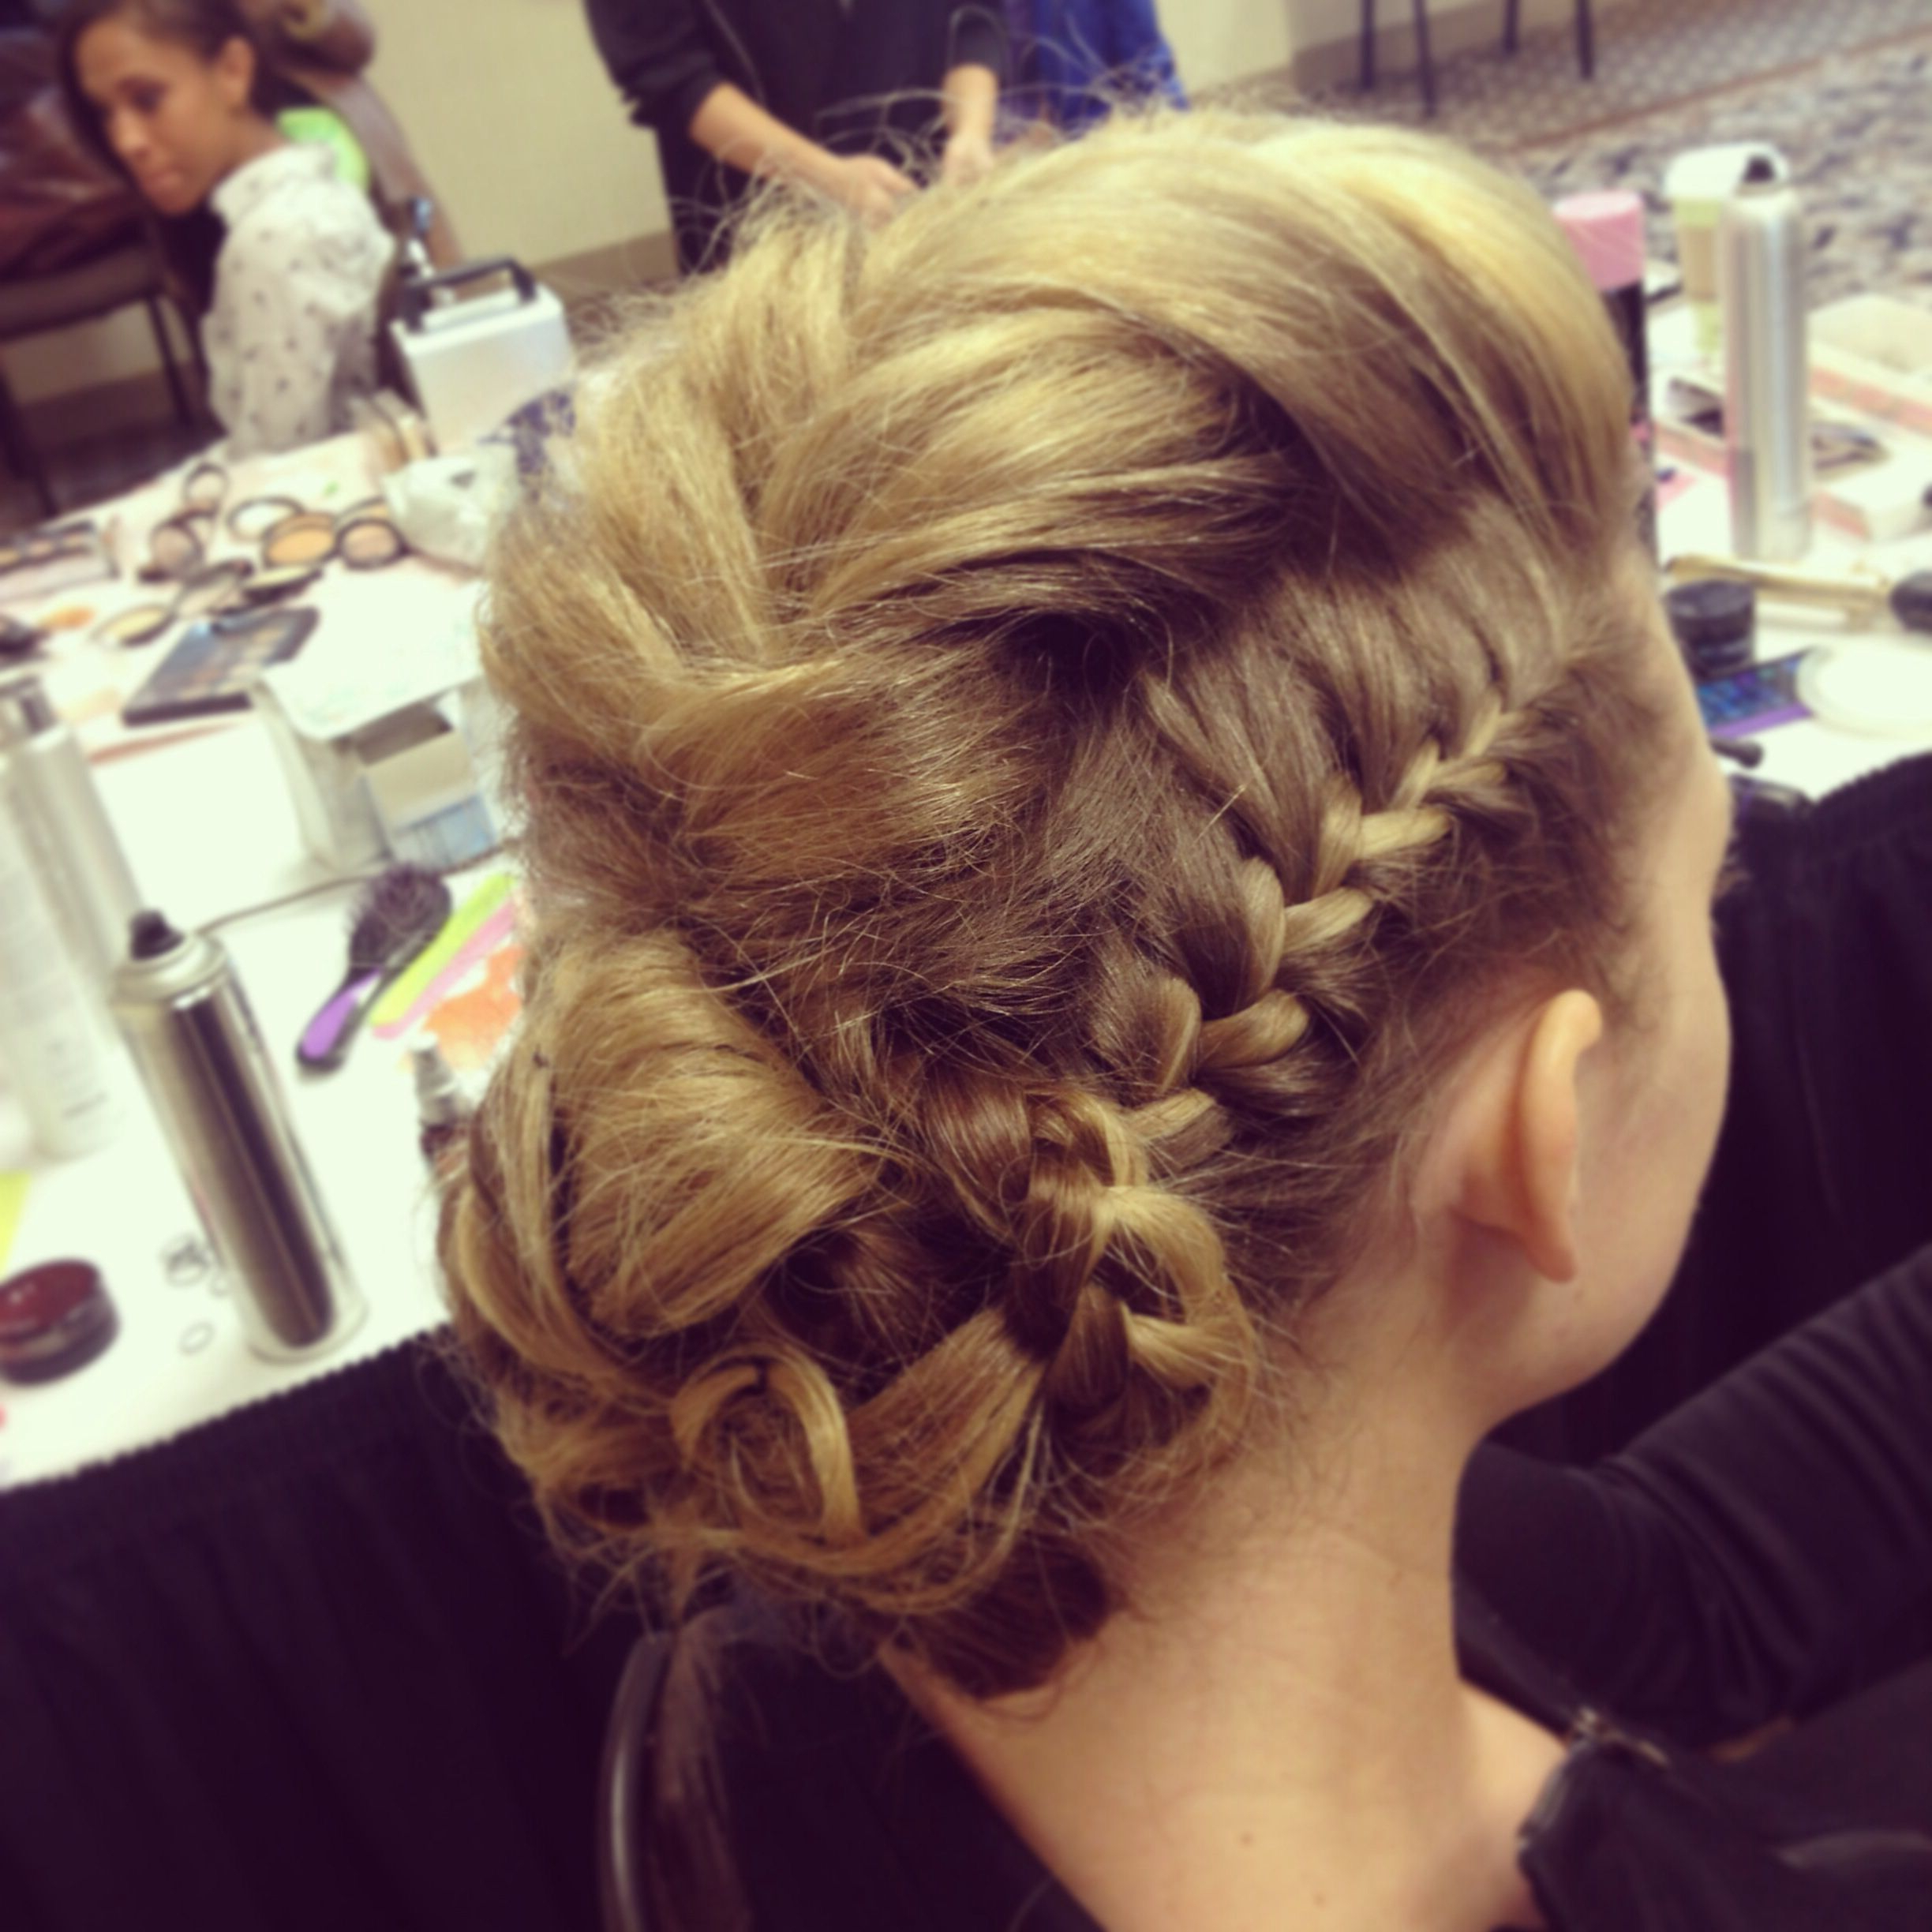 Trendy Cornrow Fishtail Side Braided Hairstyles In Braids! Bridal Updo With Braids (View 16 of 20)